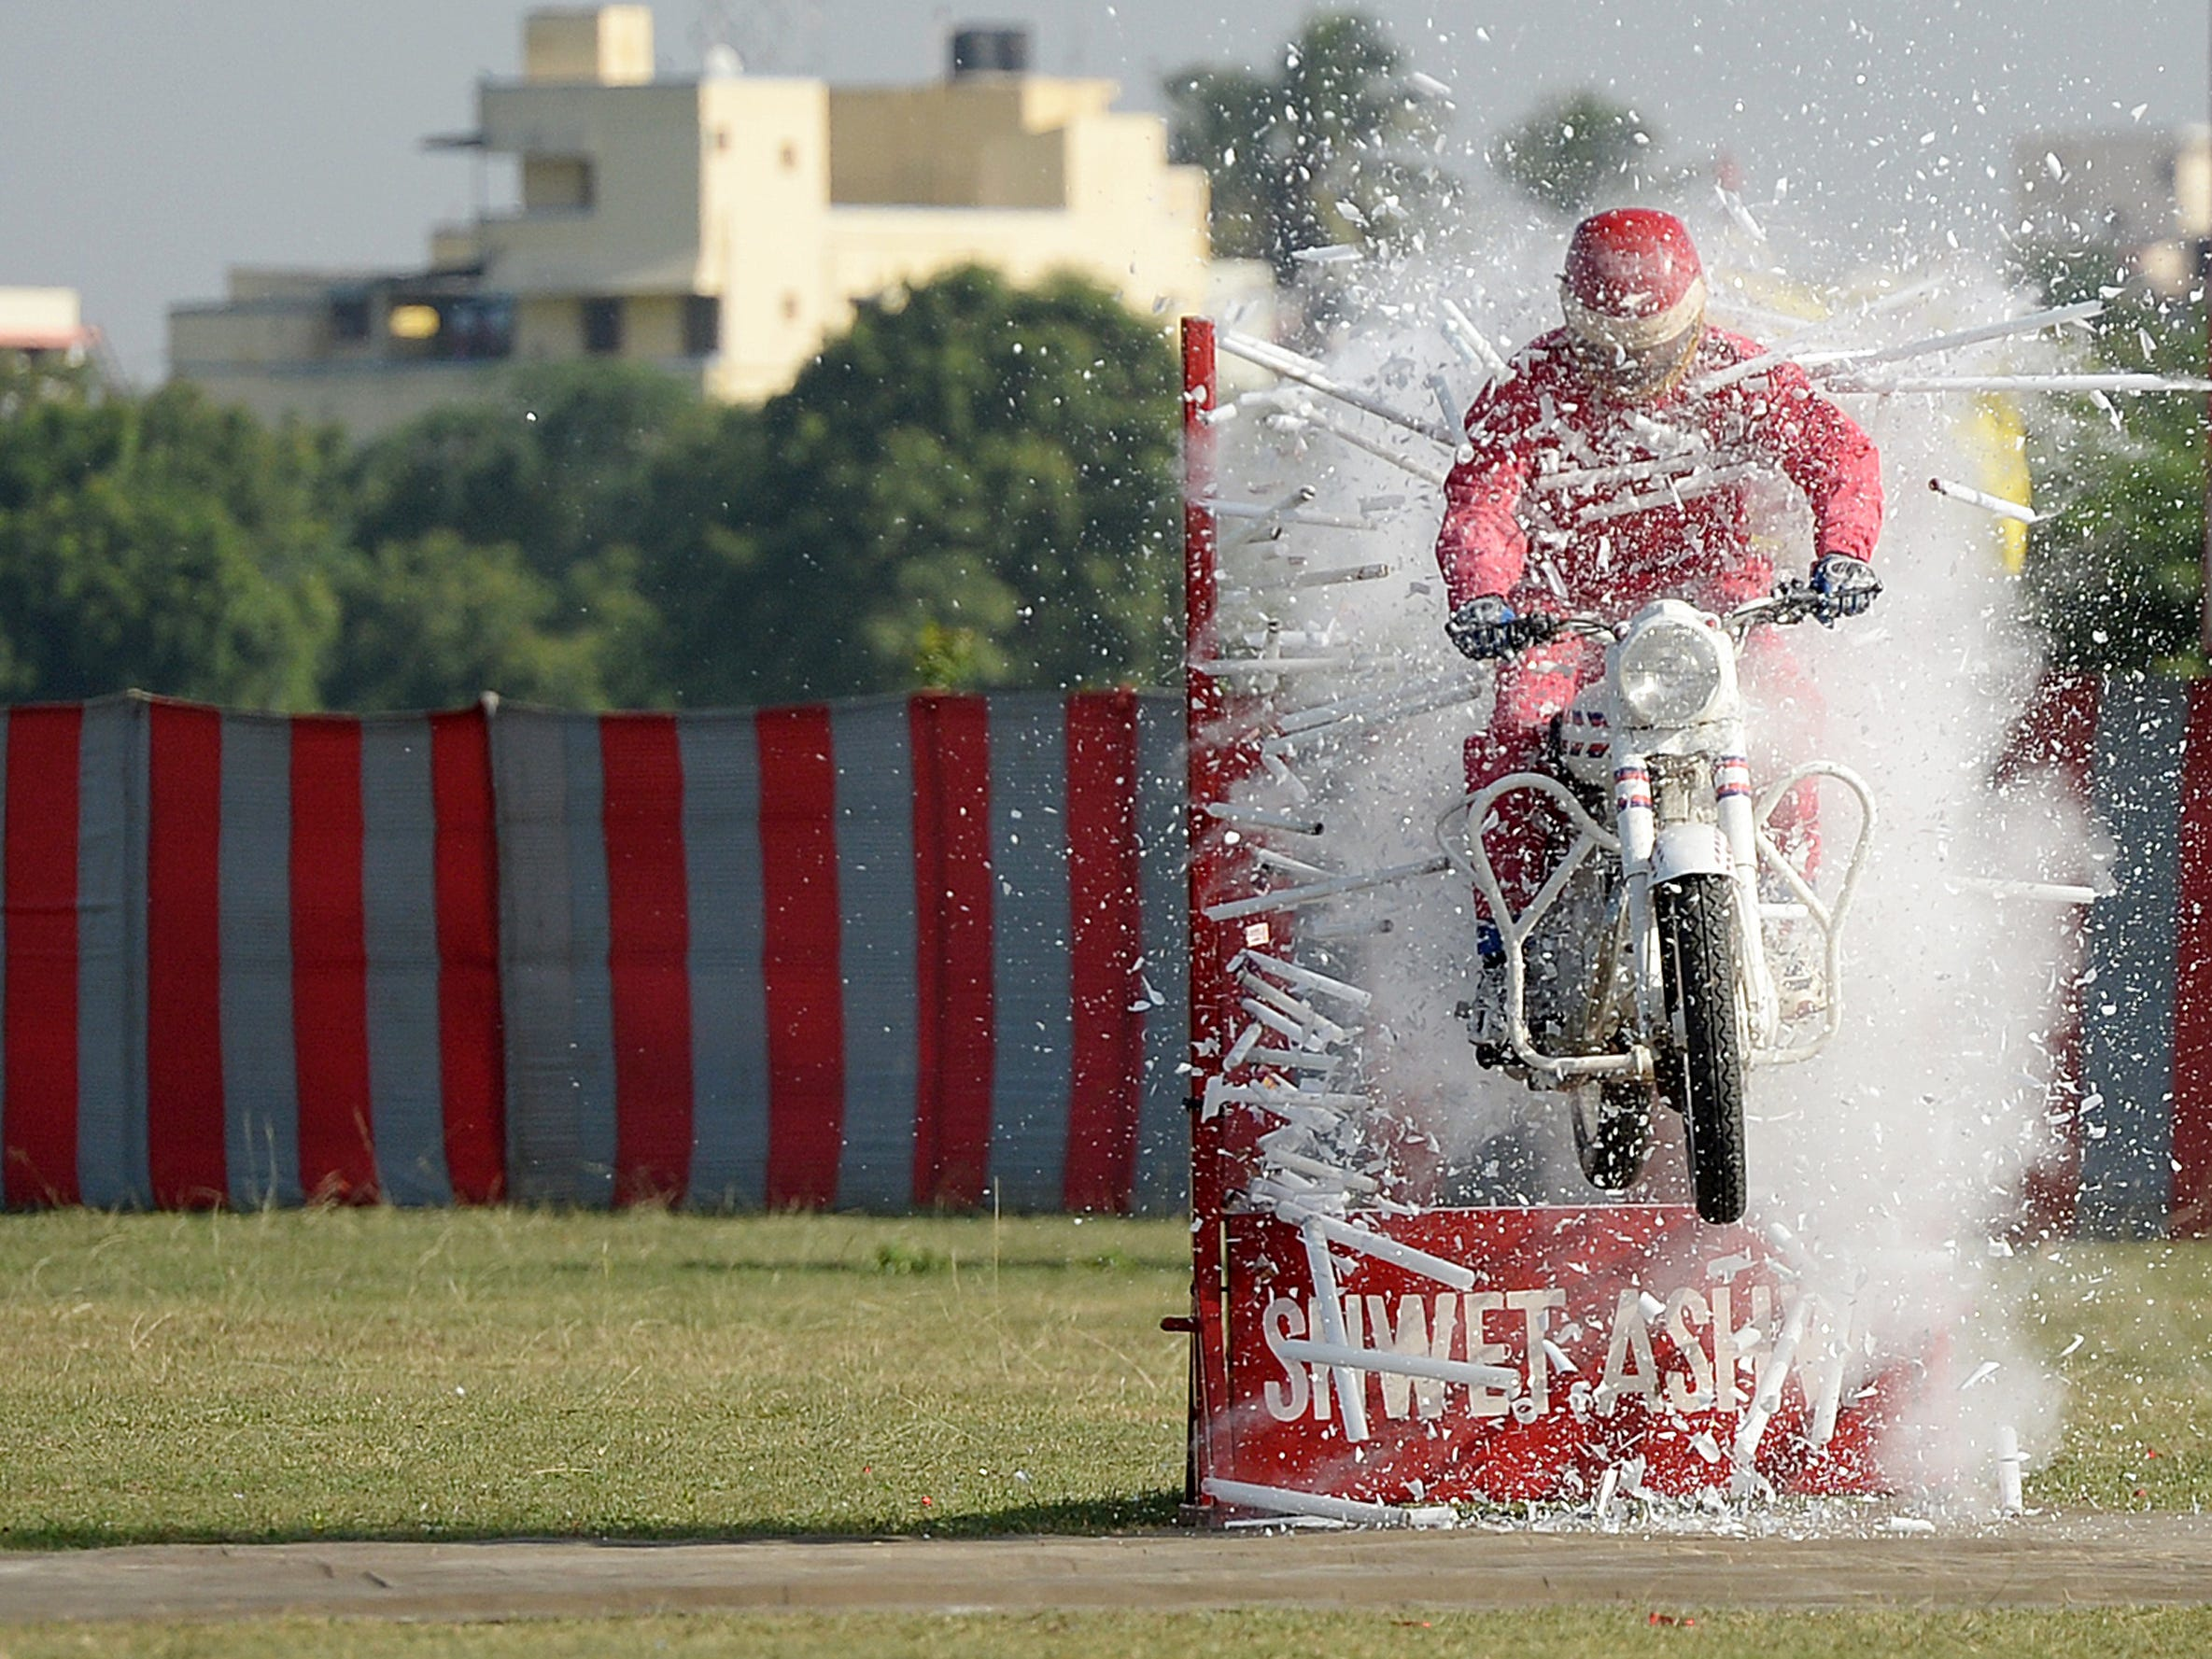 An Indian army soldier, a member of a motorcycle display team, performs a stunt at an officer training academy in Chennai on Friday, Sept. 7, 2018.